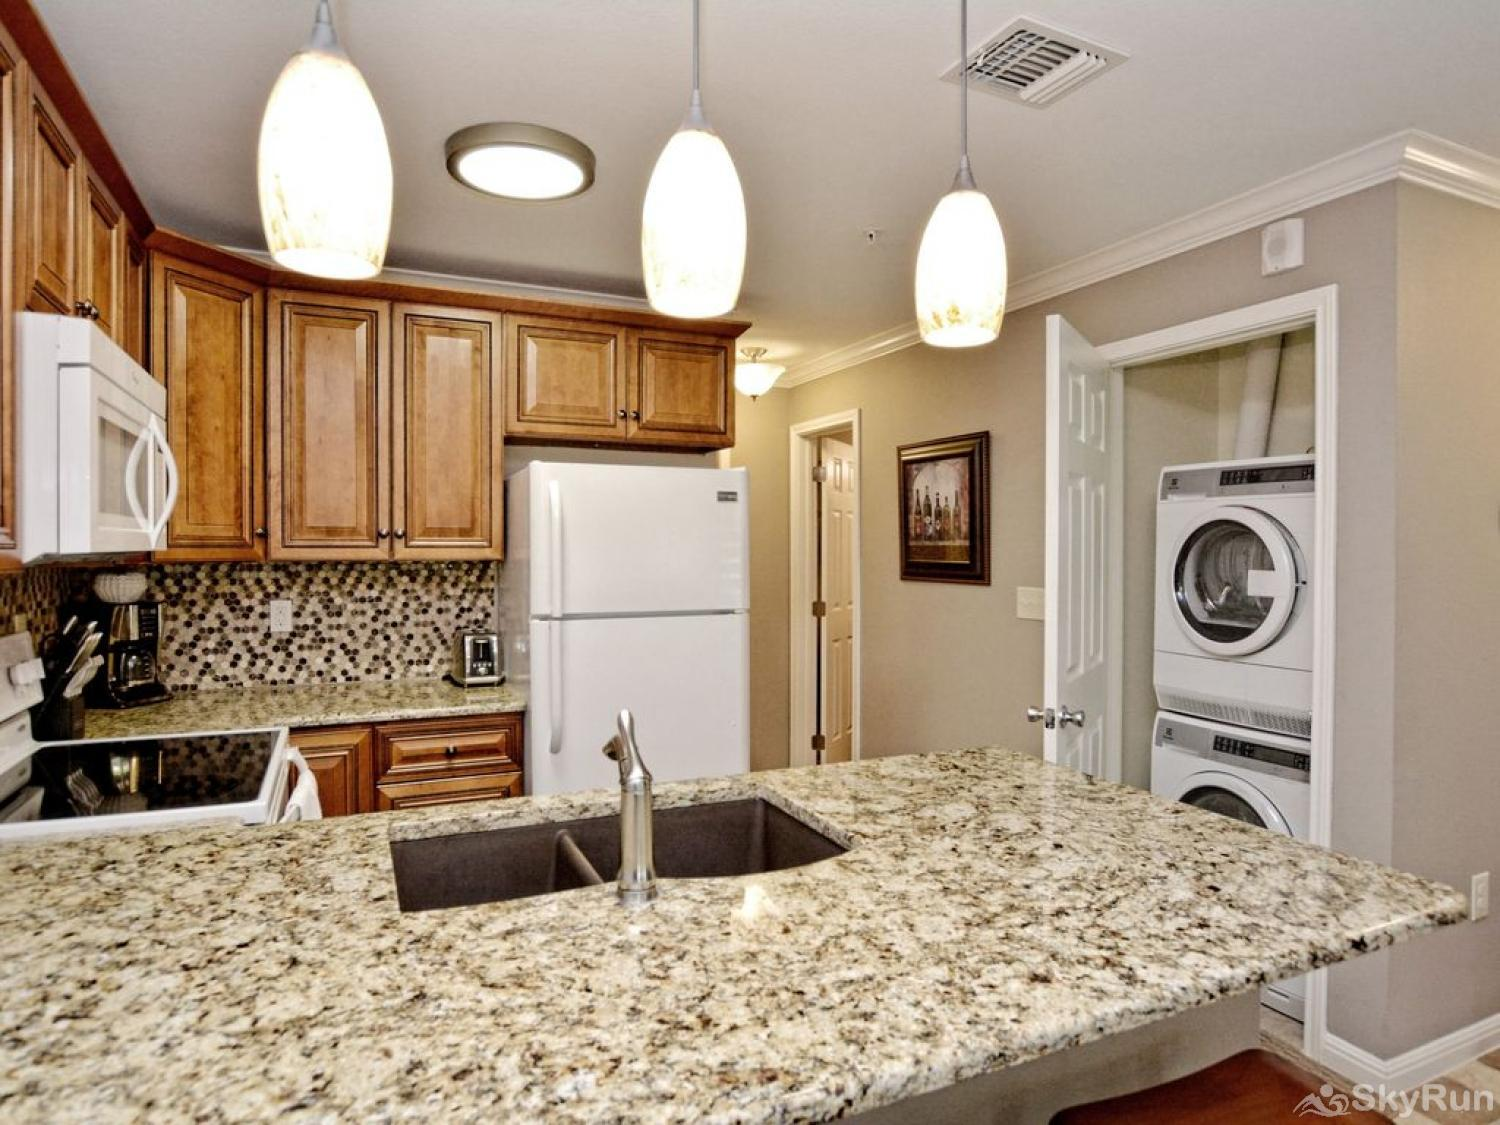 WATERWHEEL PARADISE CONDO Washer and dryer available for guest use